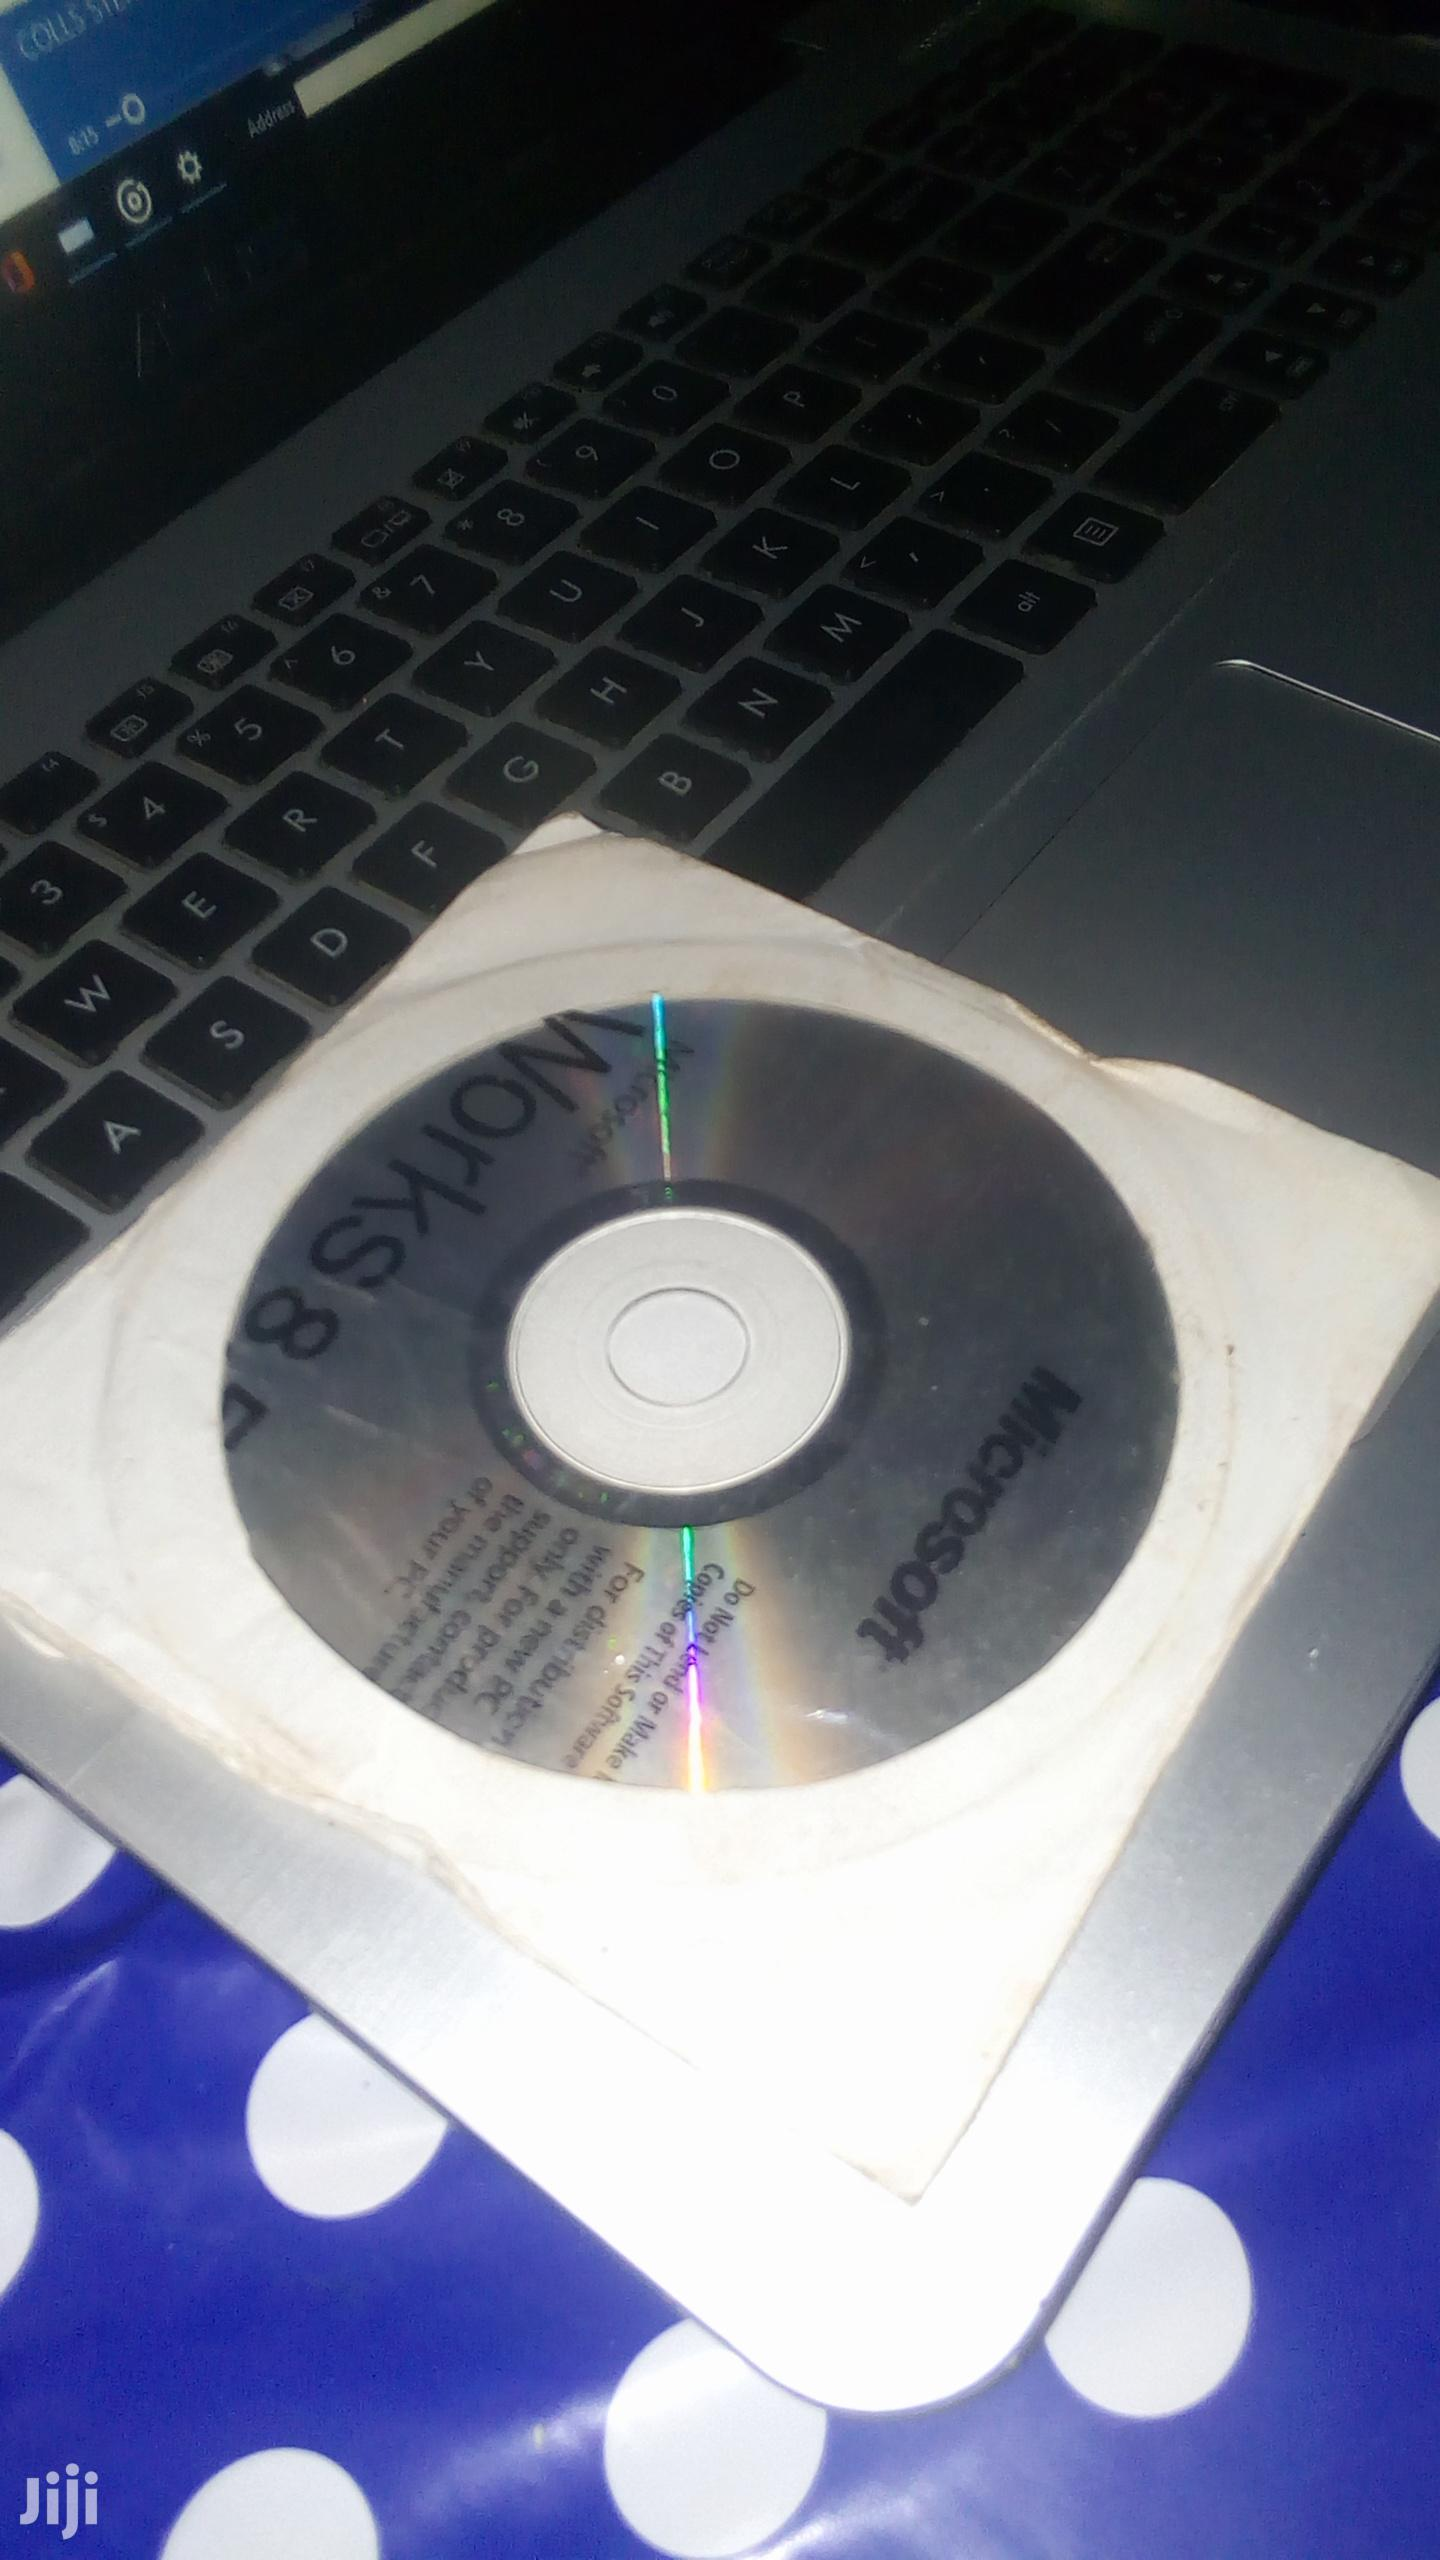 Windows 7,8,10 Burn Disk | Software for sale in Tema Metropolitan, Greater Accra, Ghana